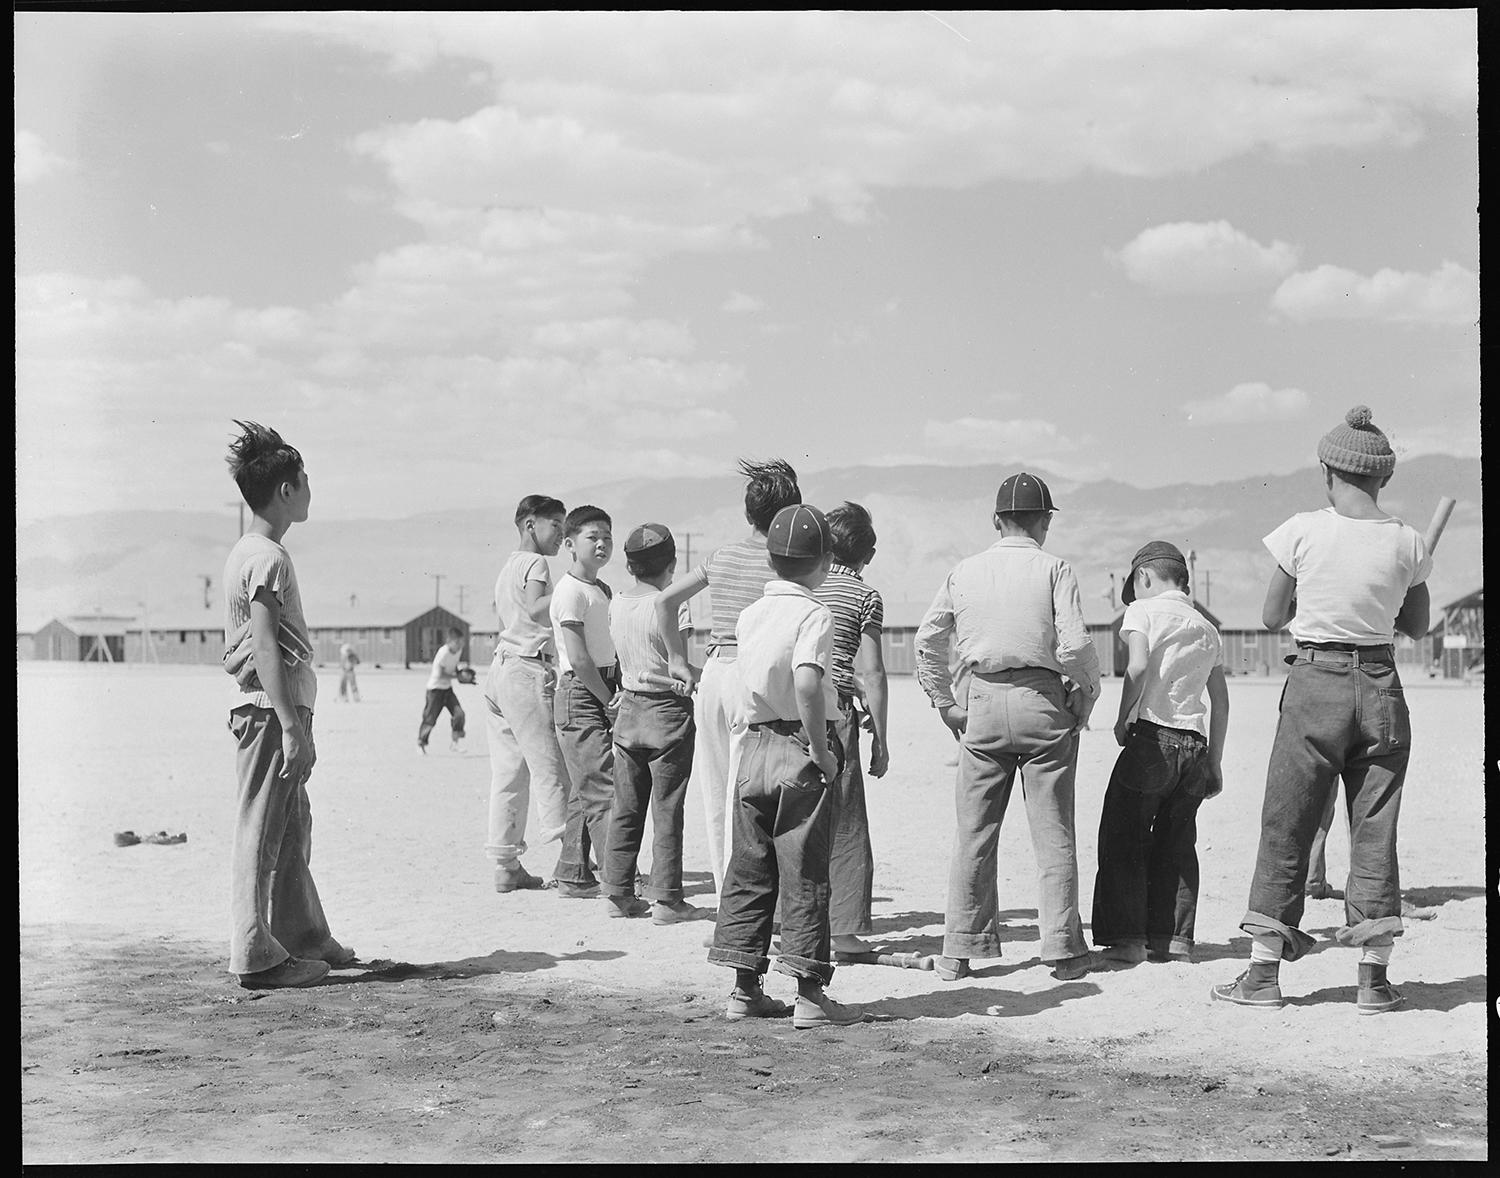 There were baseball fields at all 10 of the relocation centers during World War II, including Manzanar, pictured above. (Dorothea Lange / Courtesy of the National Archives and Records Administration)